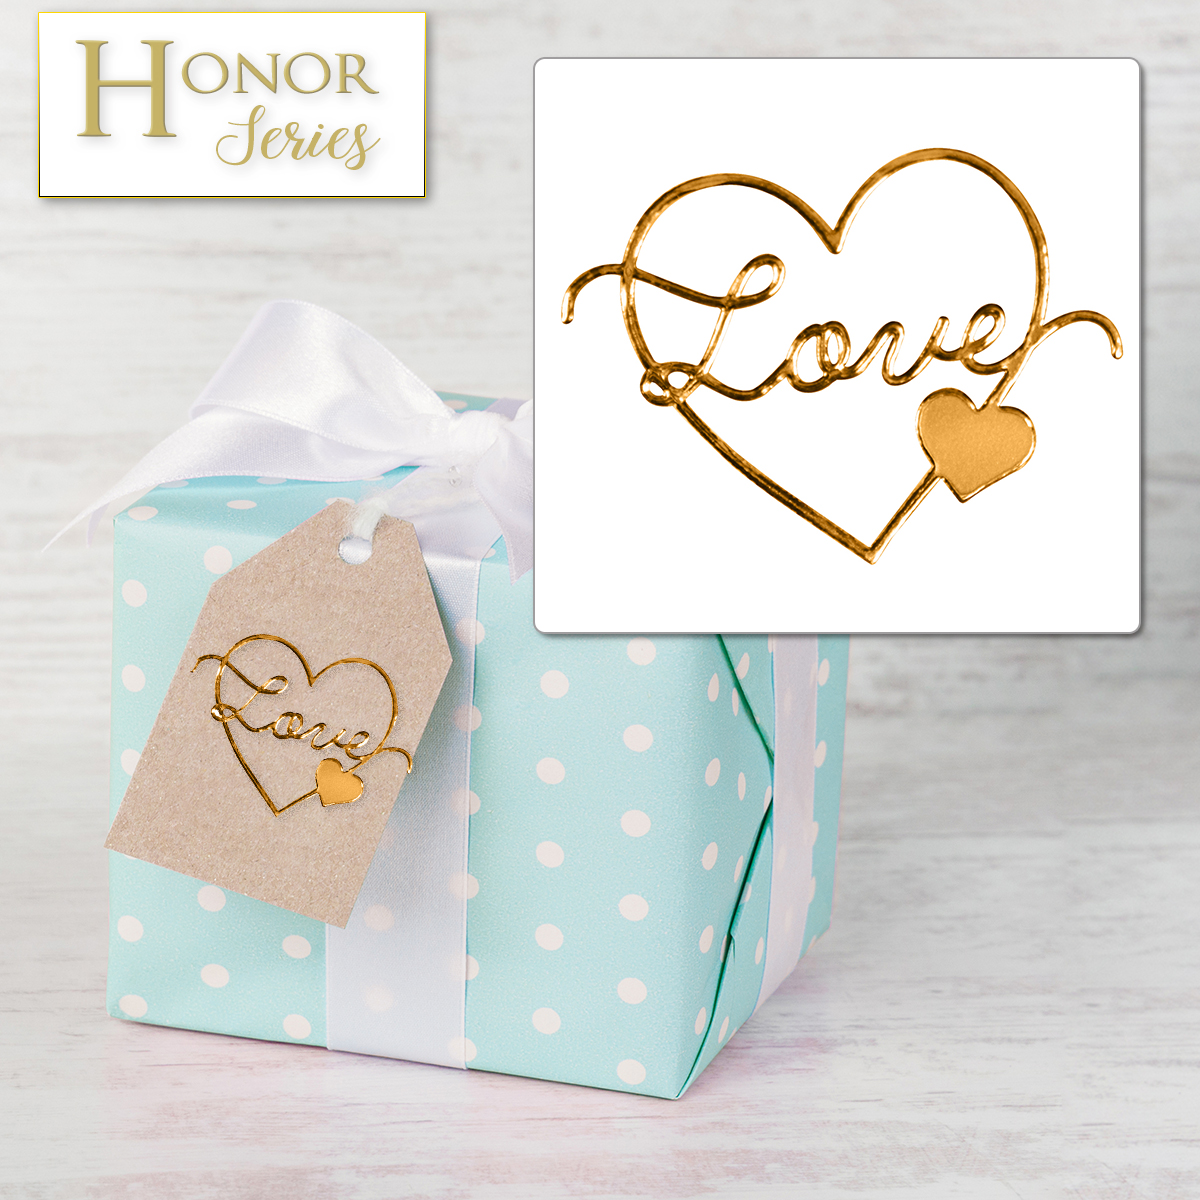 Honor Series - Delicate Touch Copper Love Seals - 25 Count